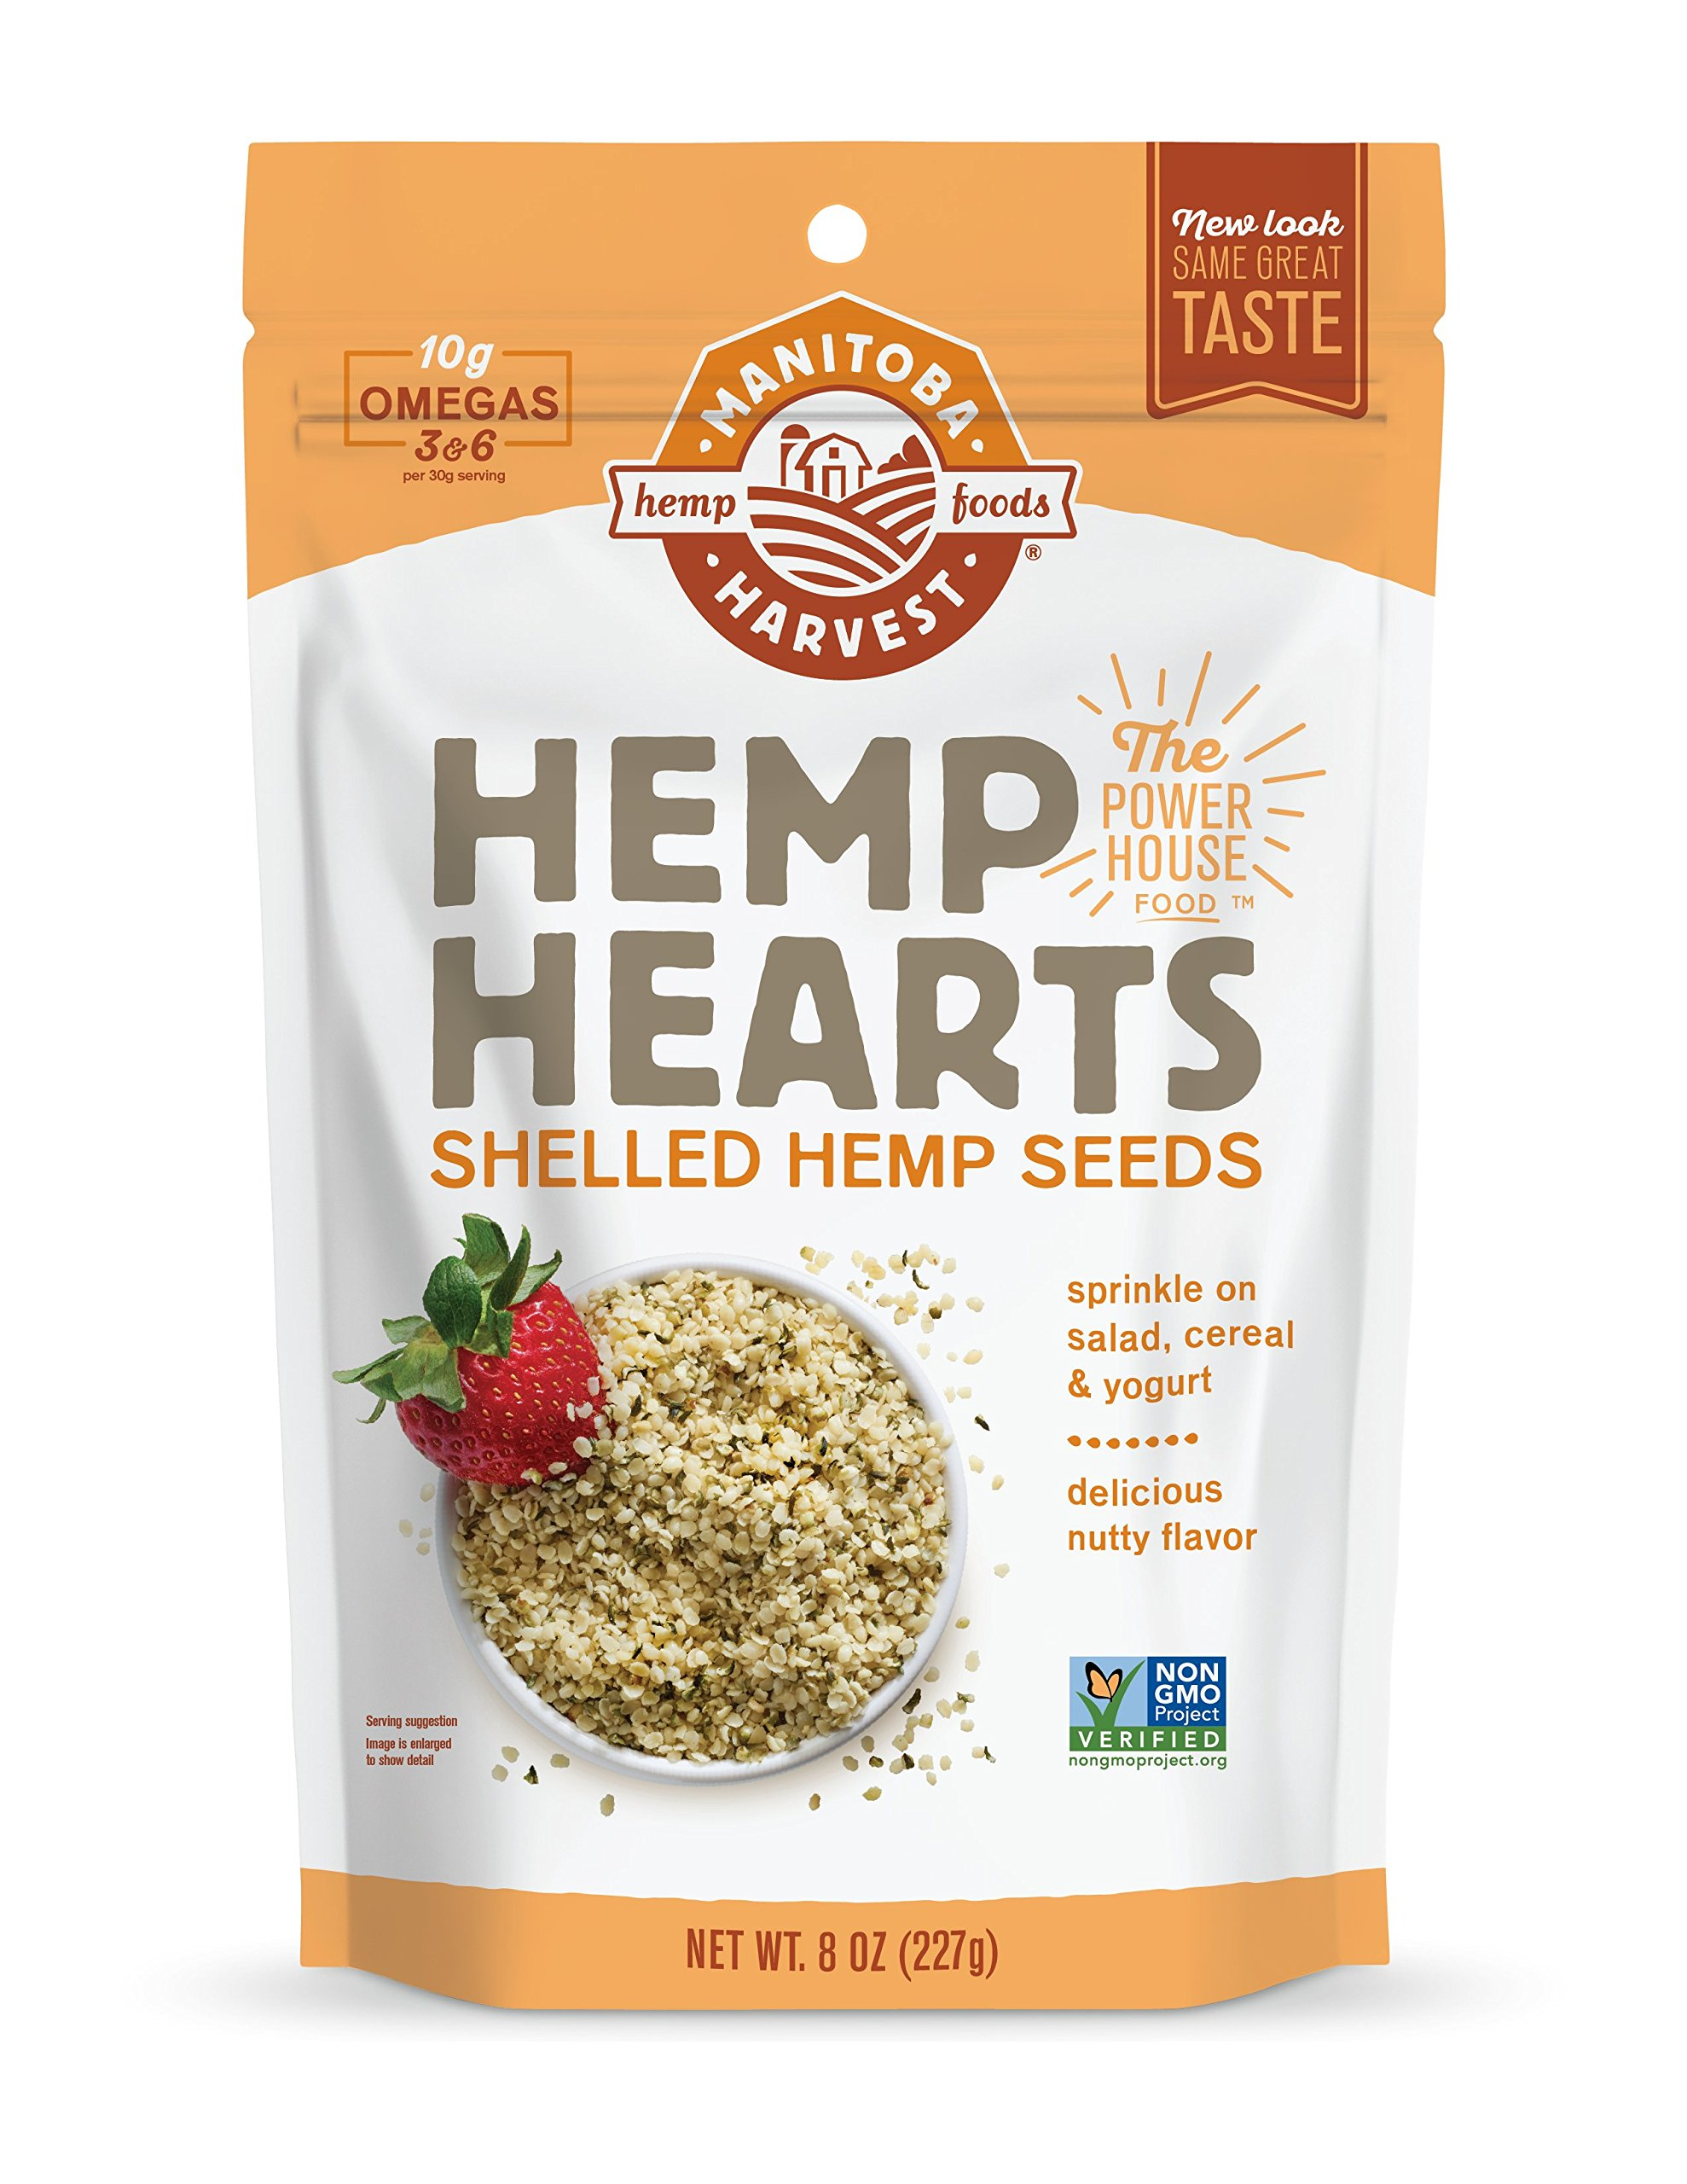 Manitoba Harvest Hemp Hearts Raw Shelled Hemp Seeds, 8oz (Pack of 2); with 10g protein& Omegas per Serving, Non-GMO, Gluten Free